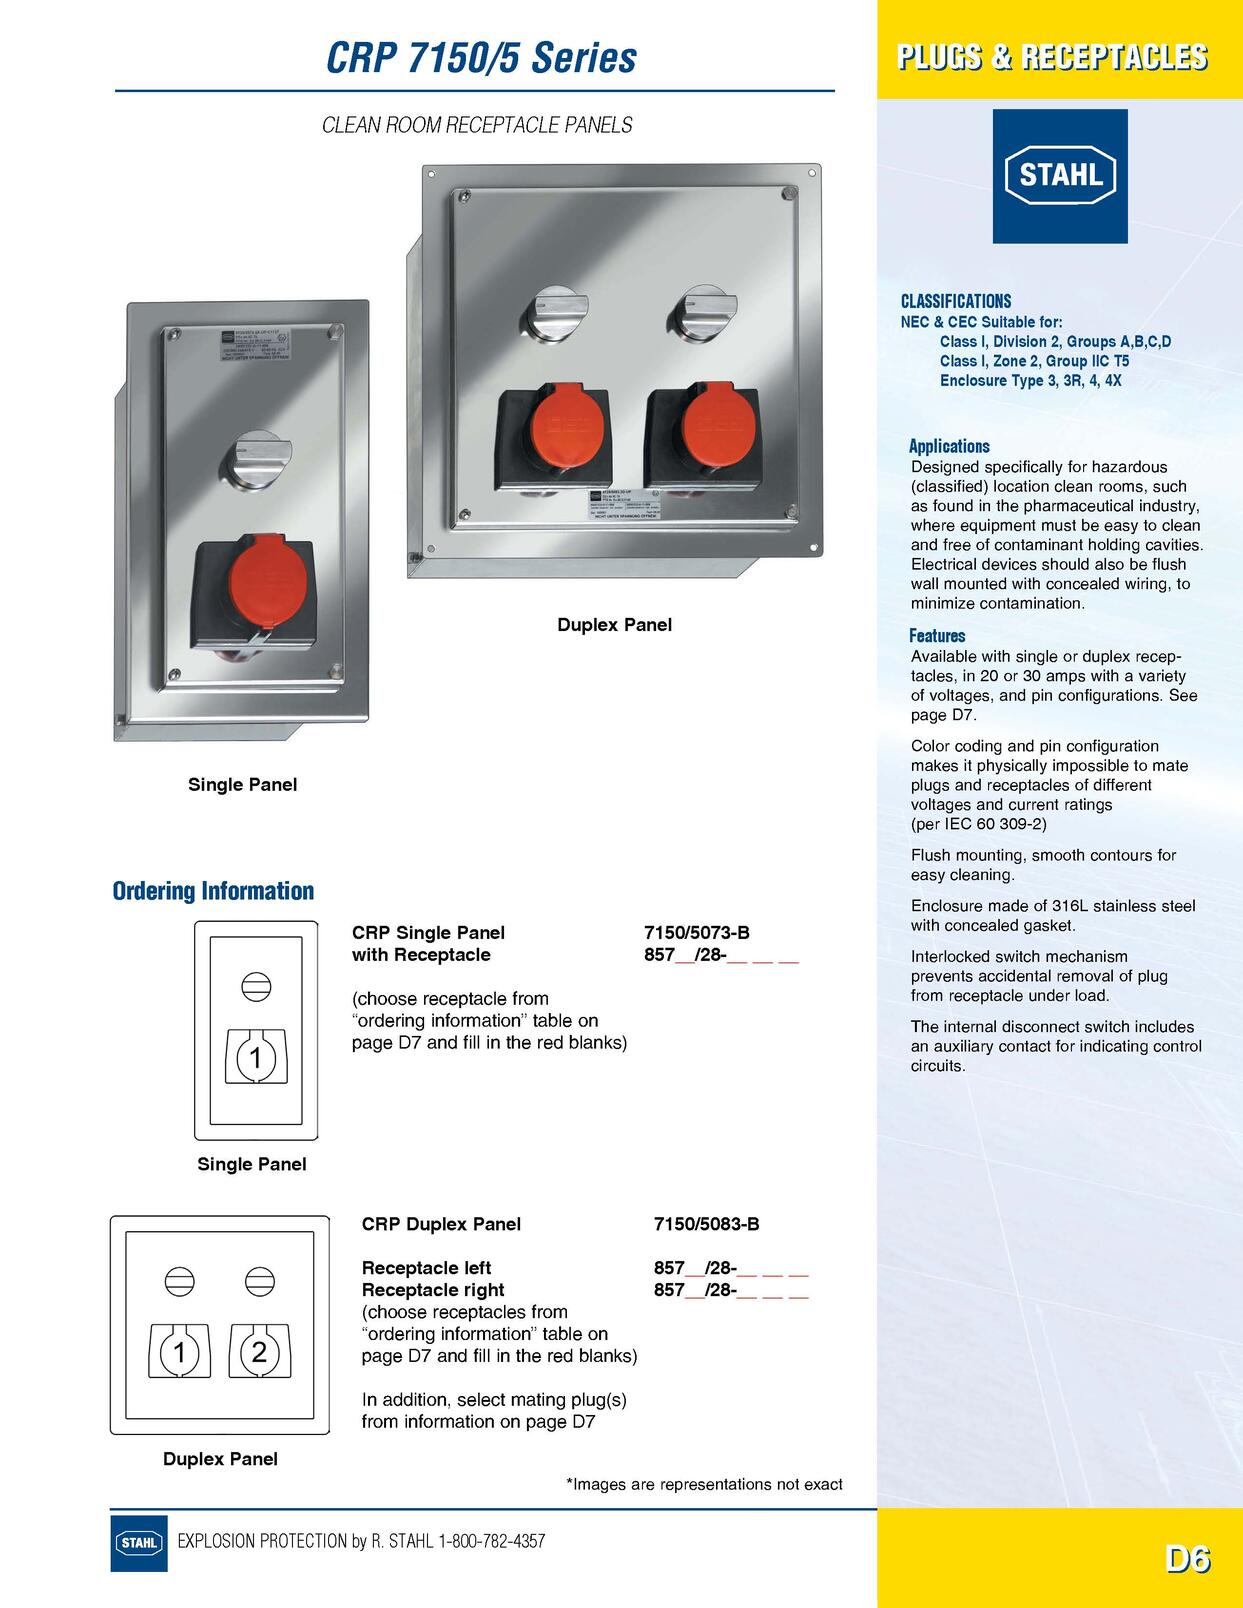 Plugs Receptacles R Stahl Electrical Catalog 9016 Page D6 Wiring Receptacle In Series